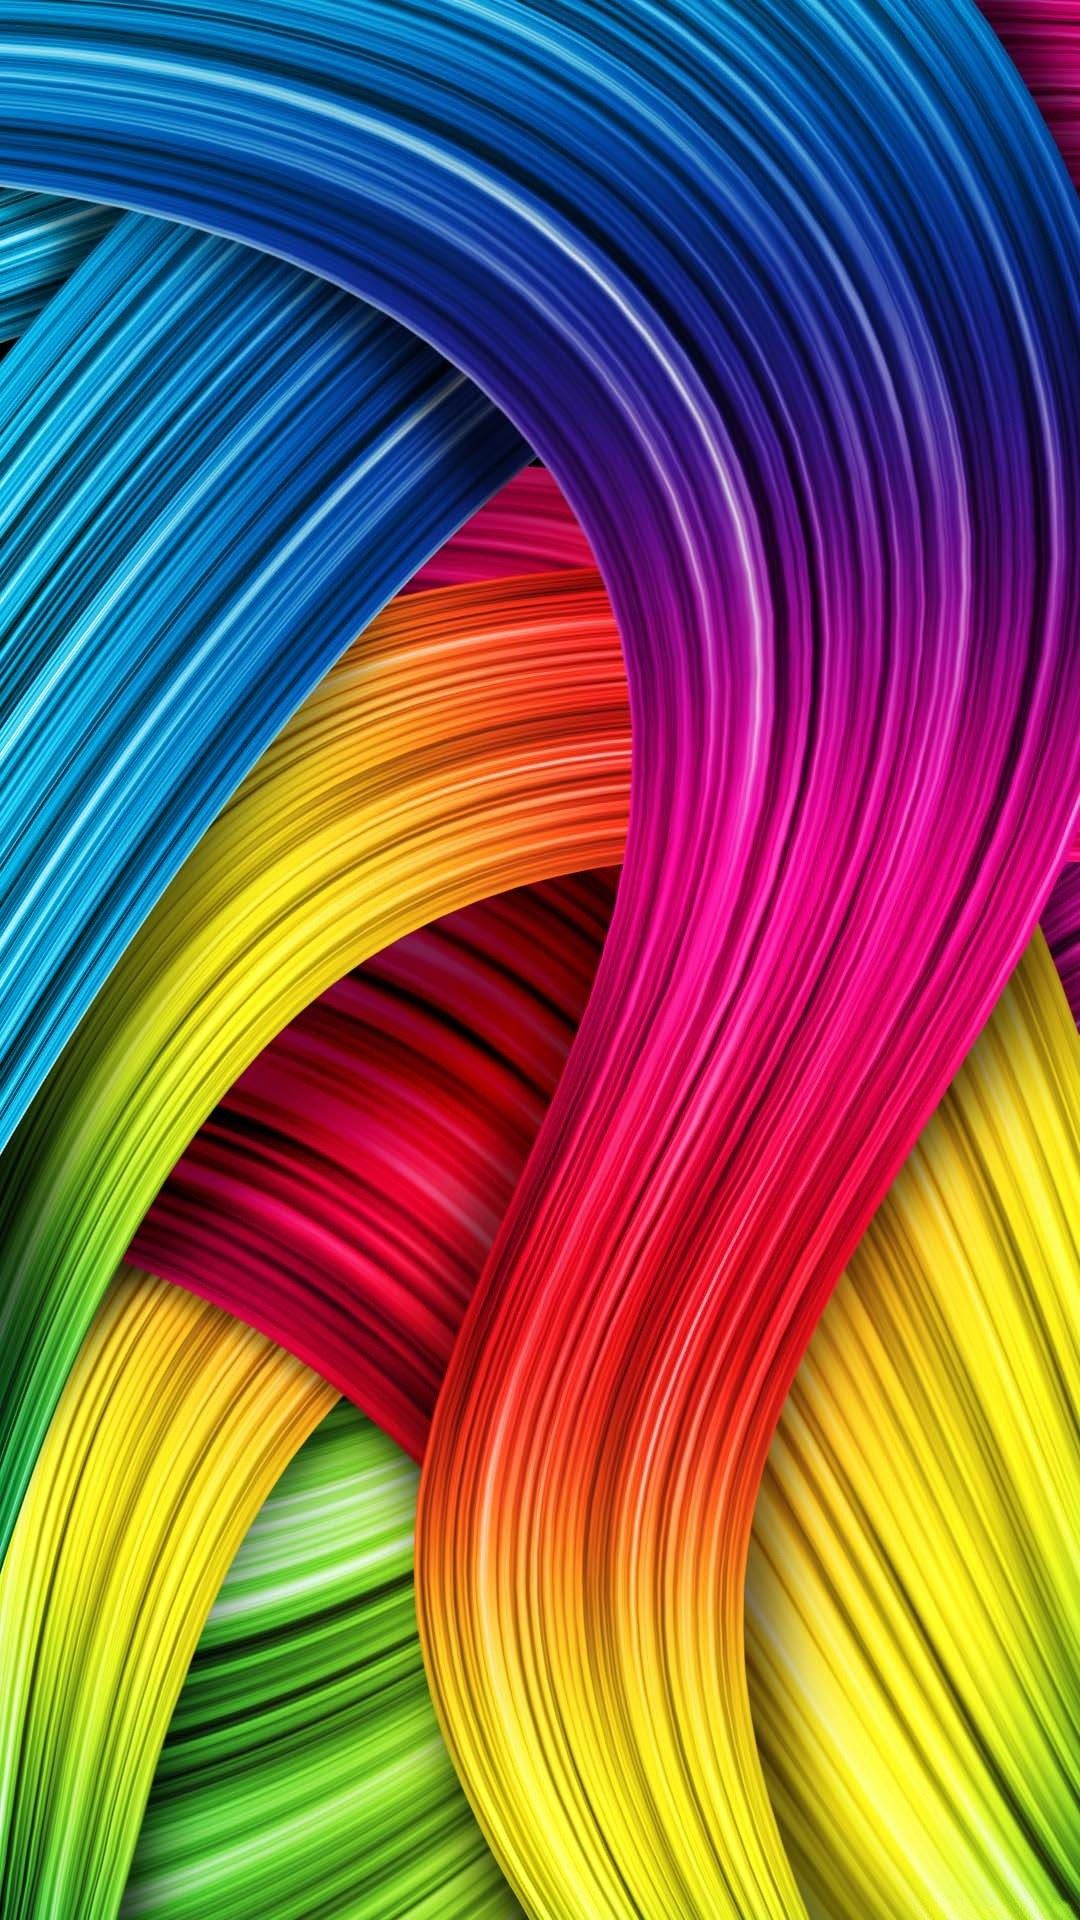 1080×1920-hd-for-mobile-phone-sony-lg-htc-motorola-samsung-wallpaper-wpc580488